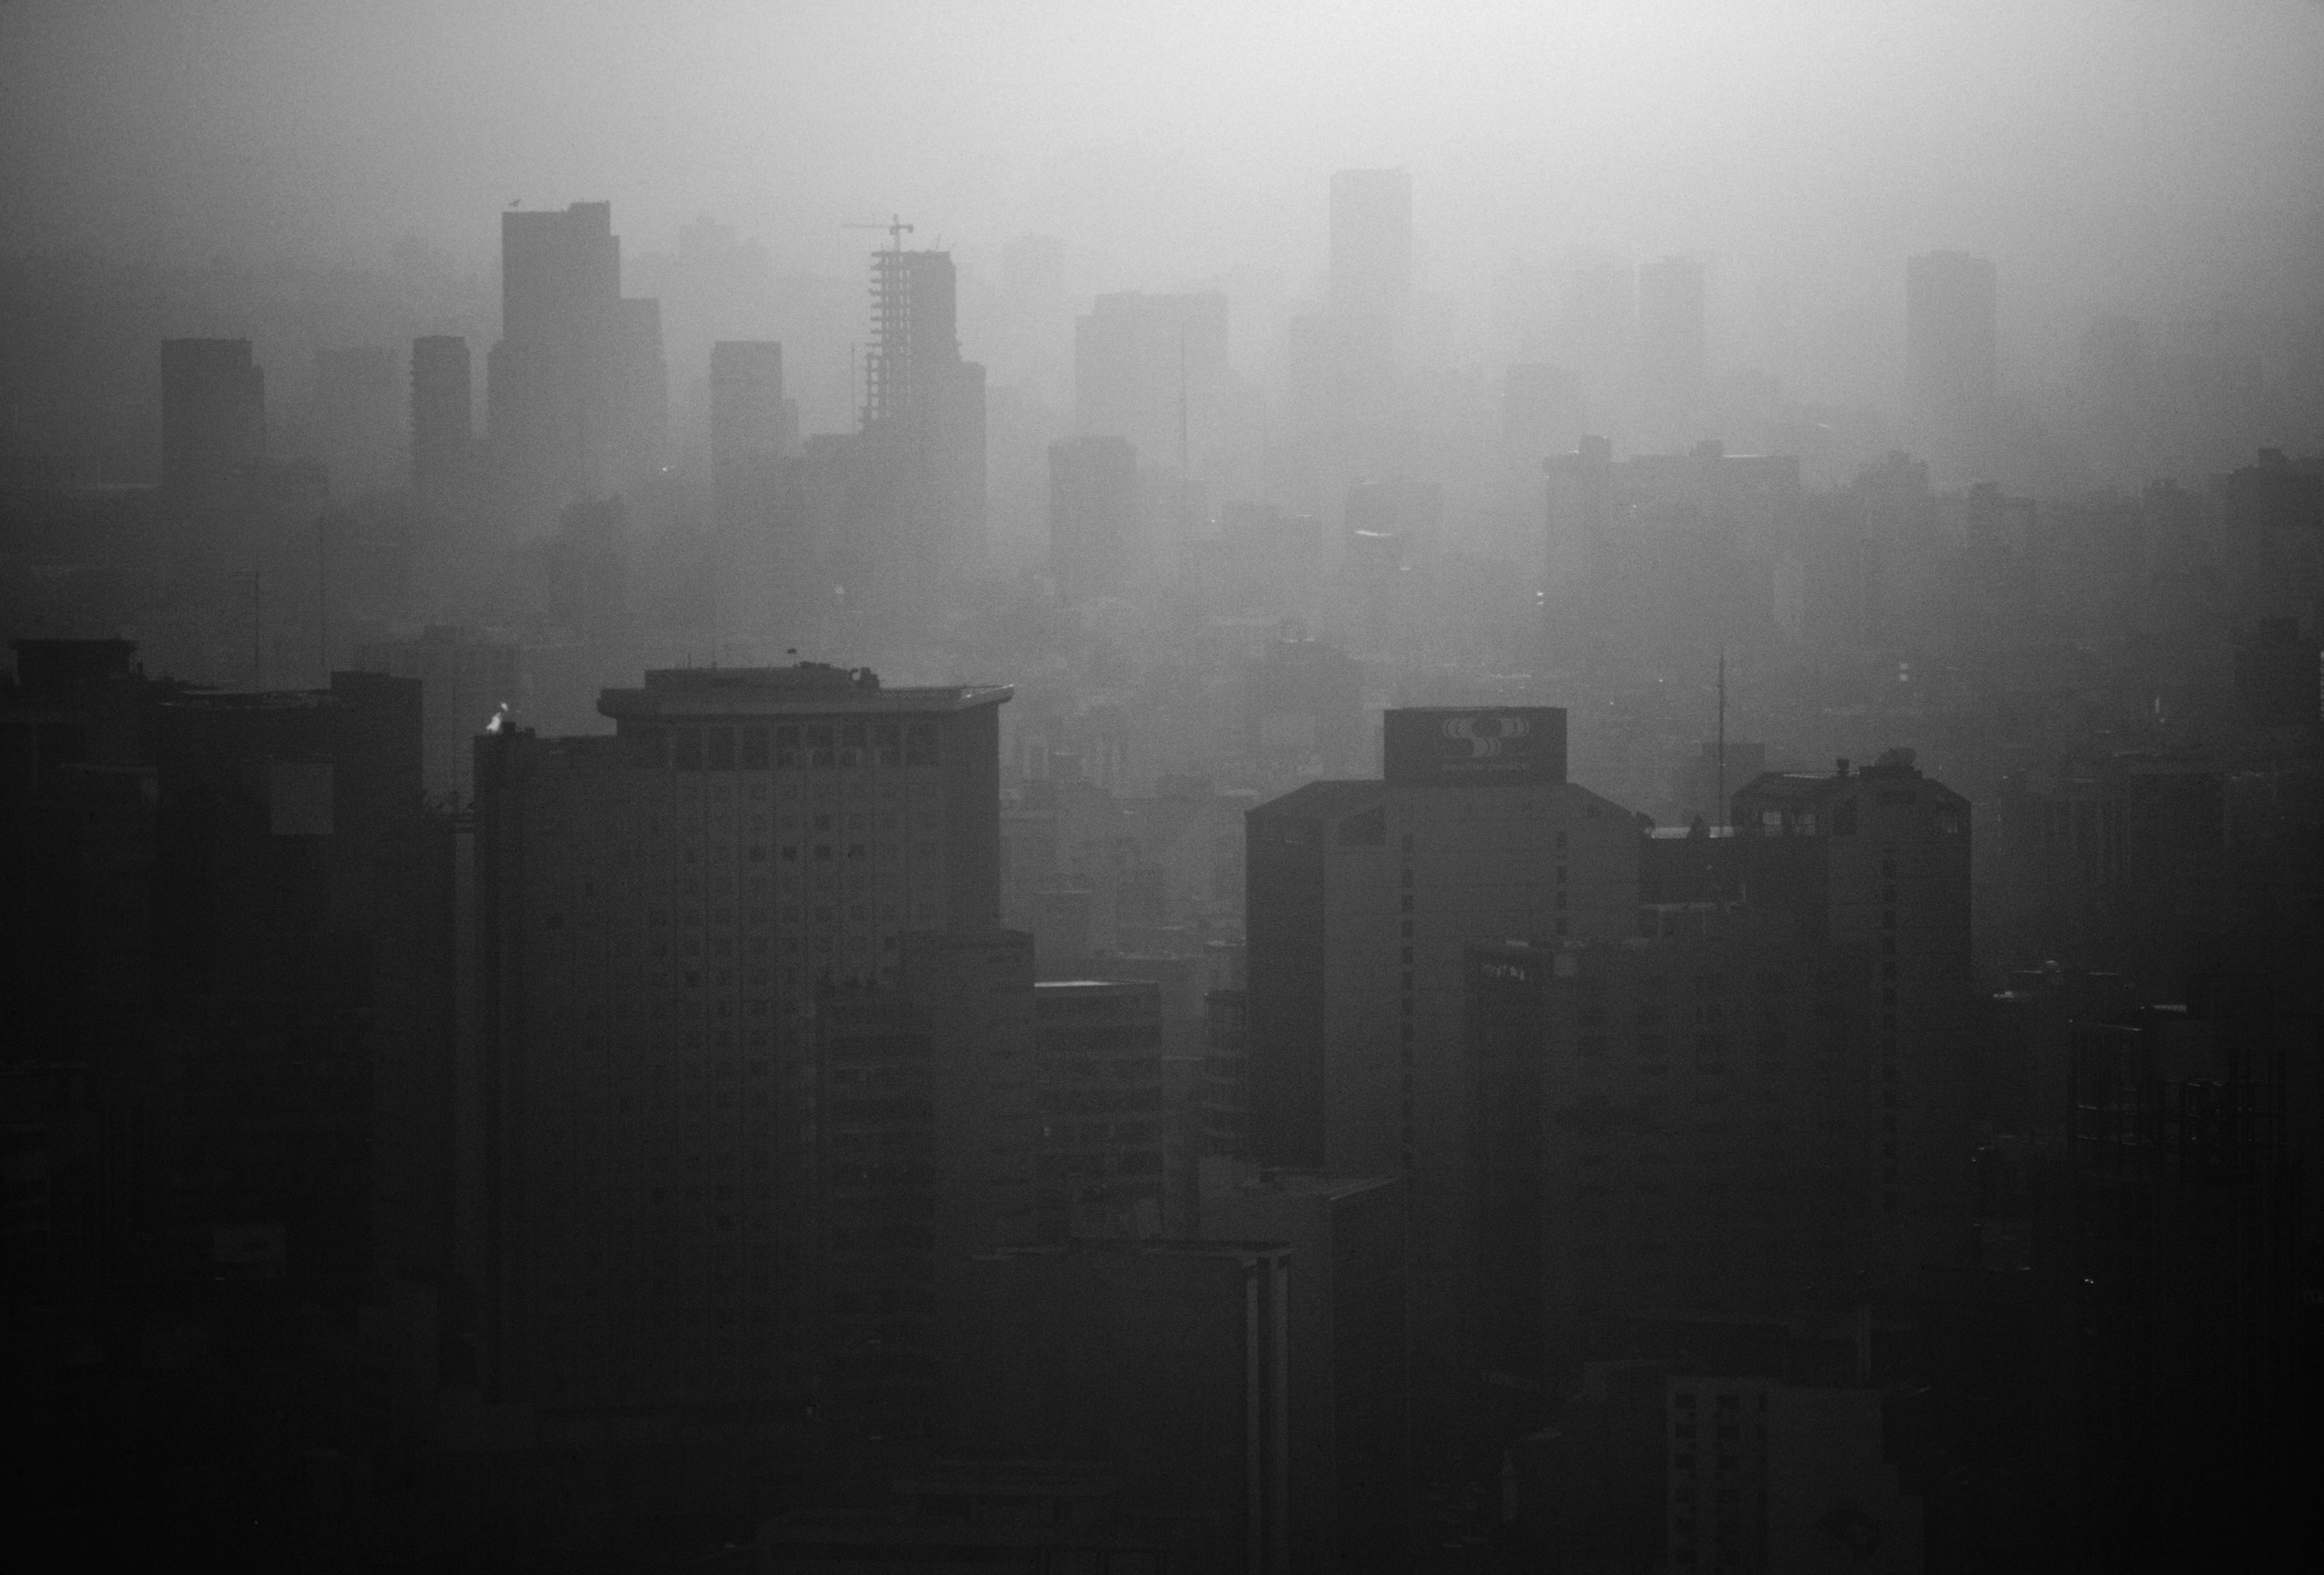 Polish society is constantly suffocating in smog